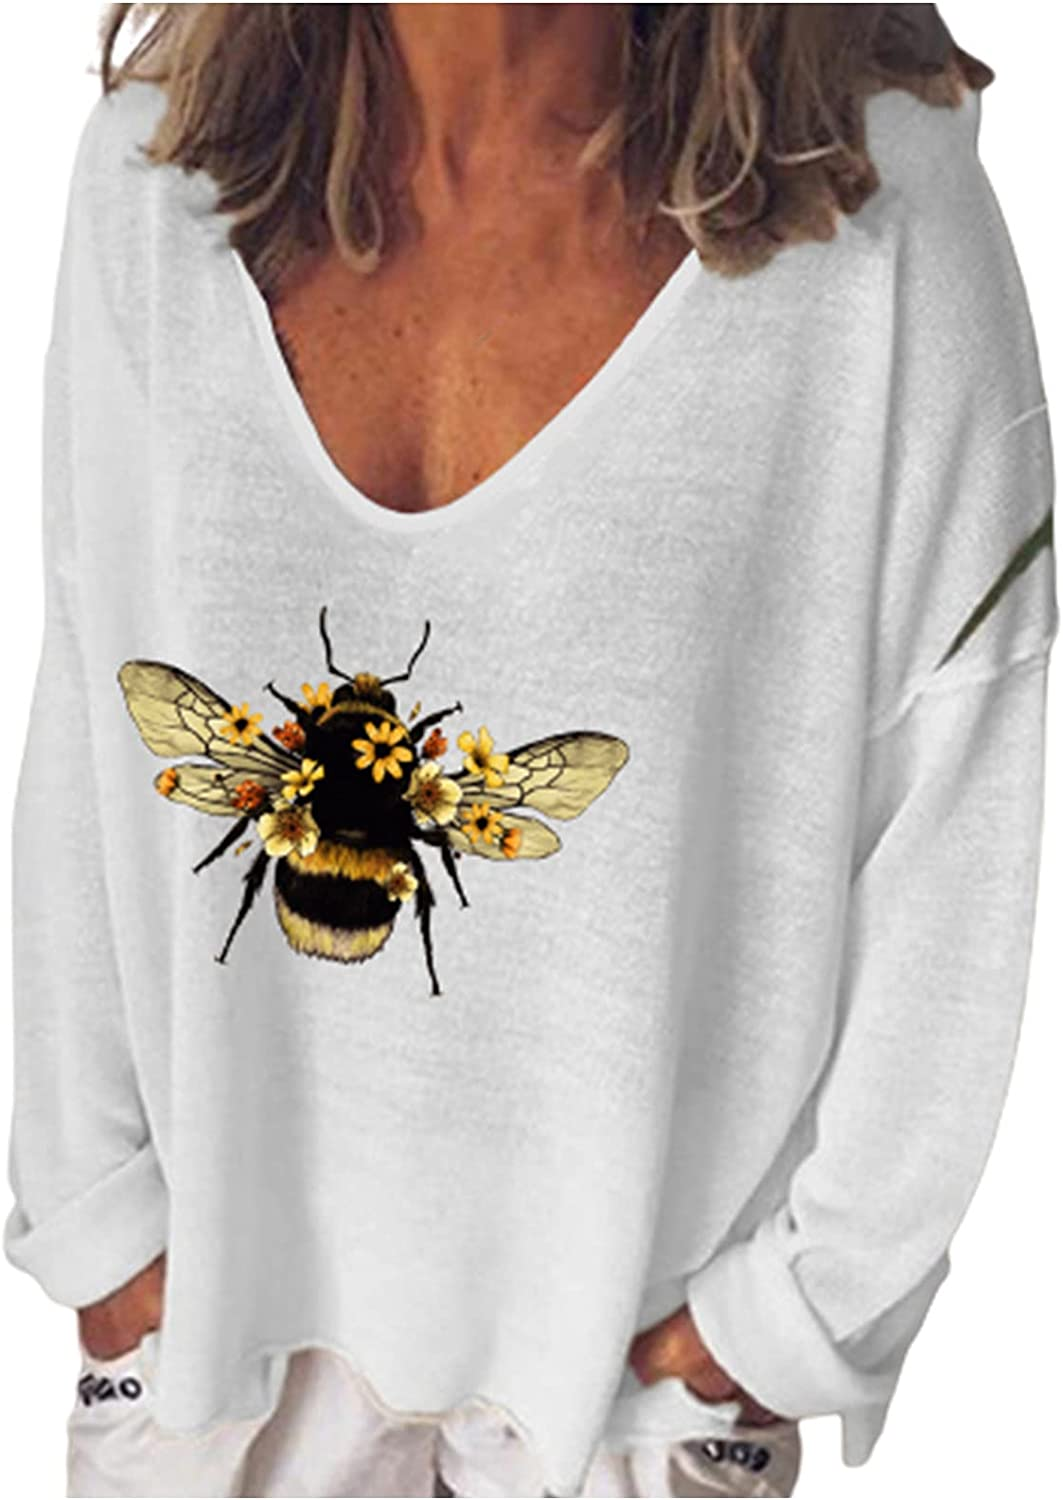 5665 Womens Cute Bee Print T-Shirt Casual Long Sleeve V-Neck Tops Sweatshirts Loose Fit Pullover Workout Tee Tunic Blouses